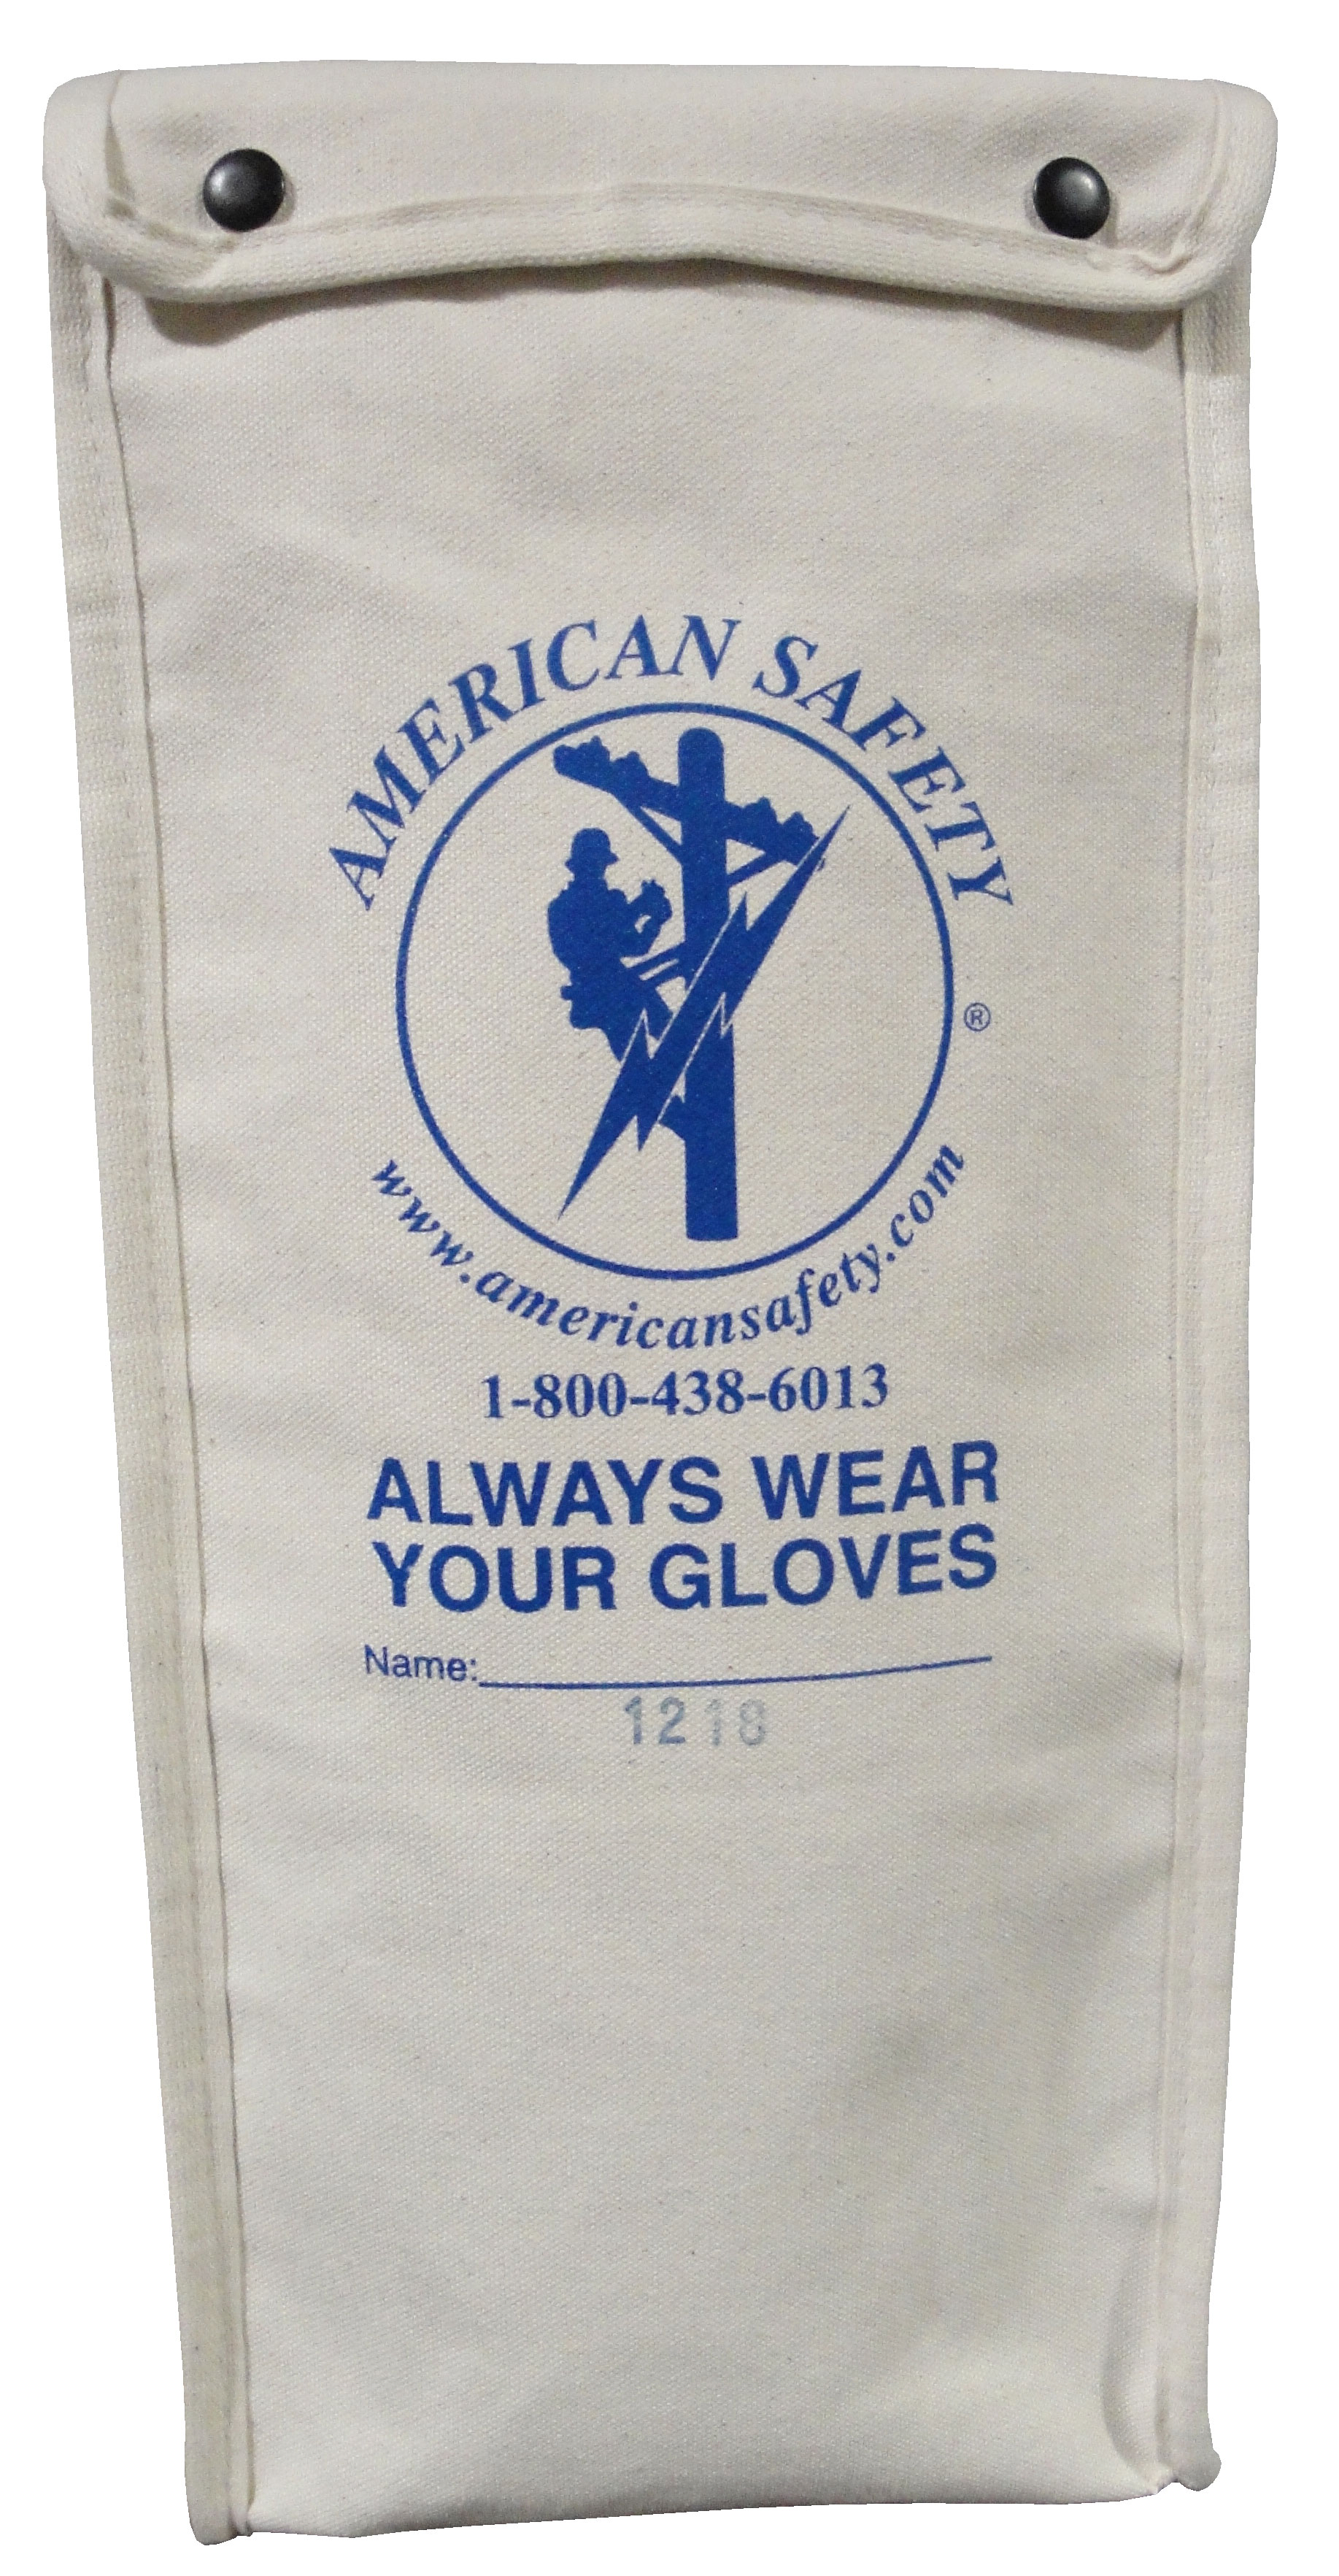 "American Safety Standard Glove Bags For 18"" rubber gloves, Canvas"